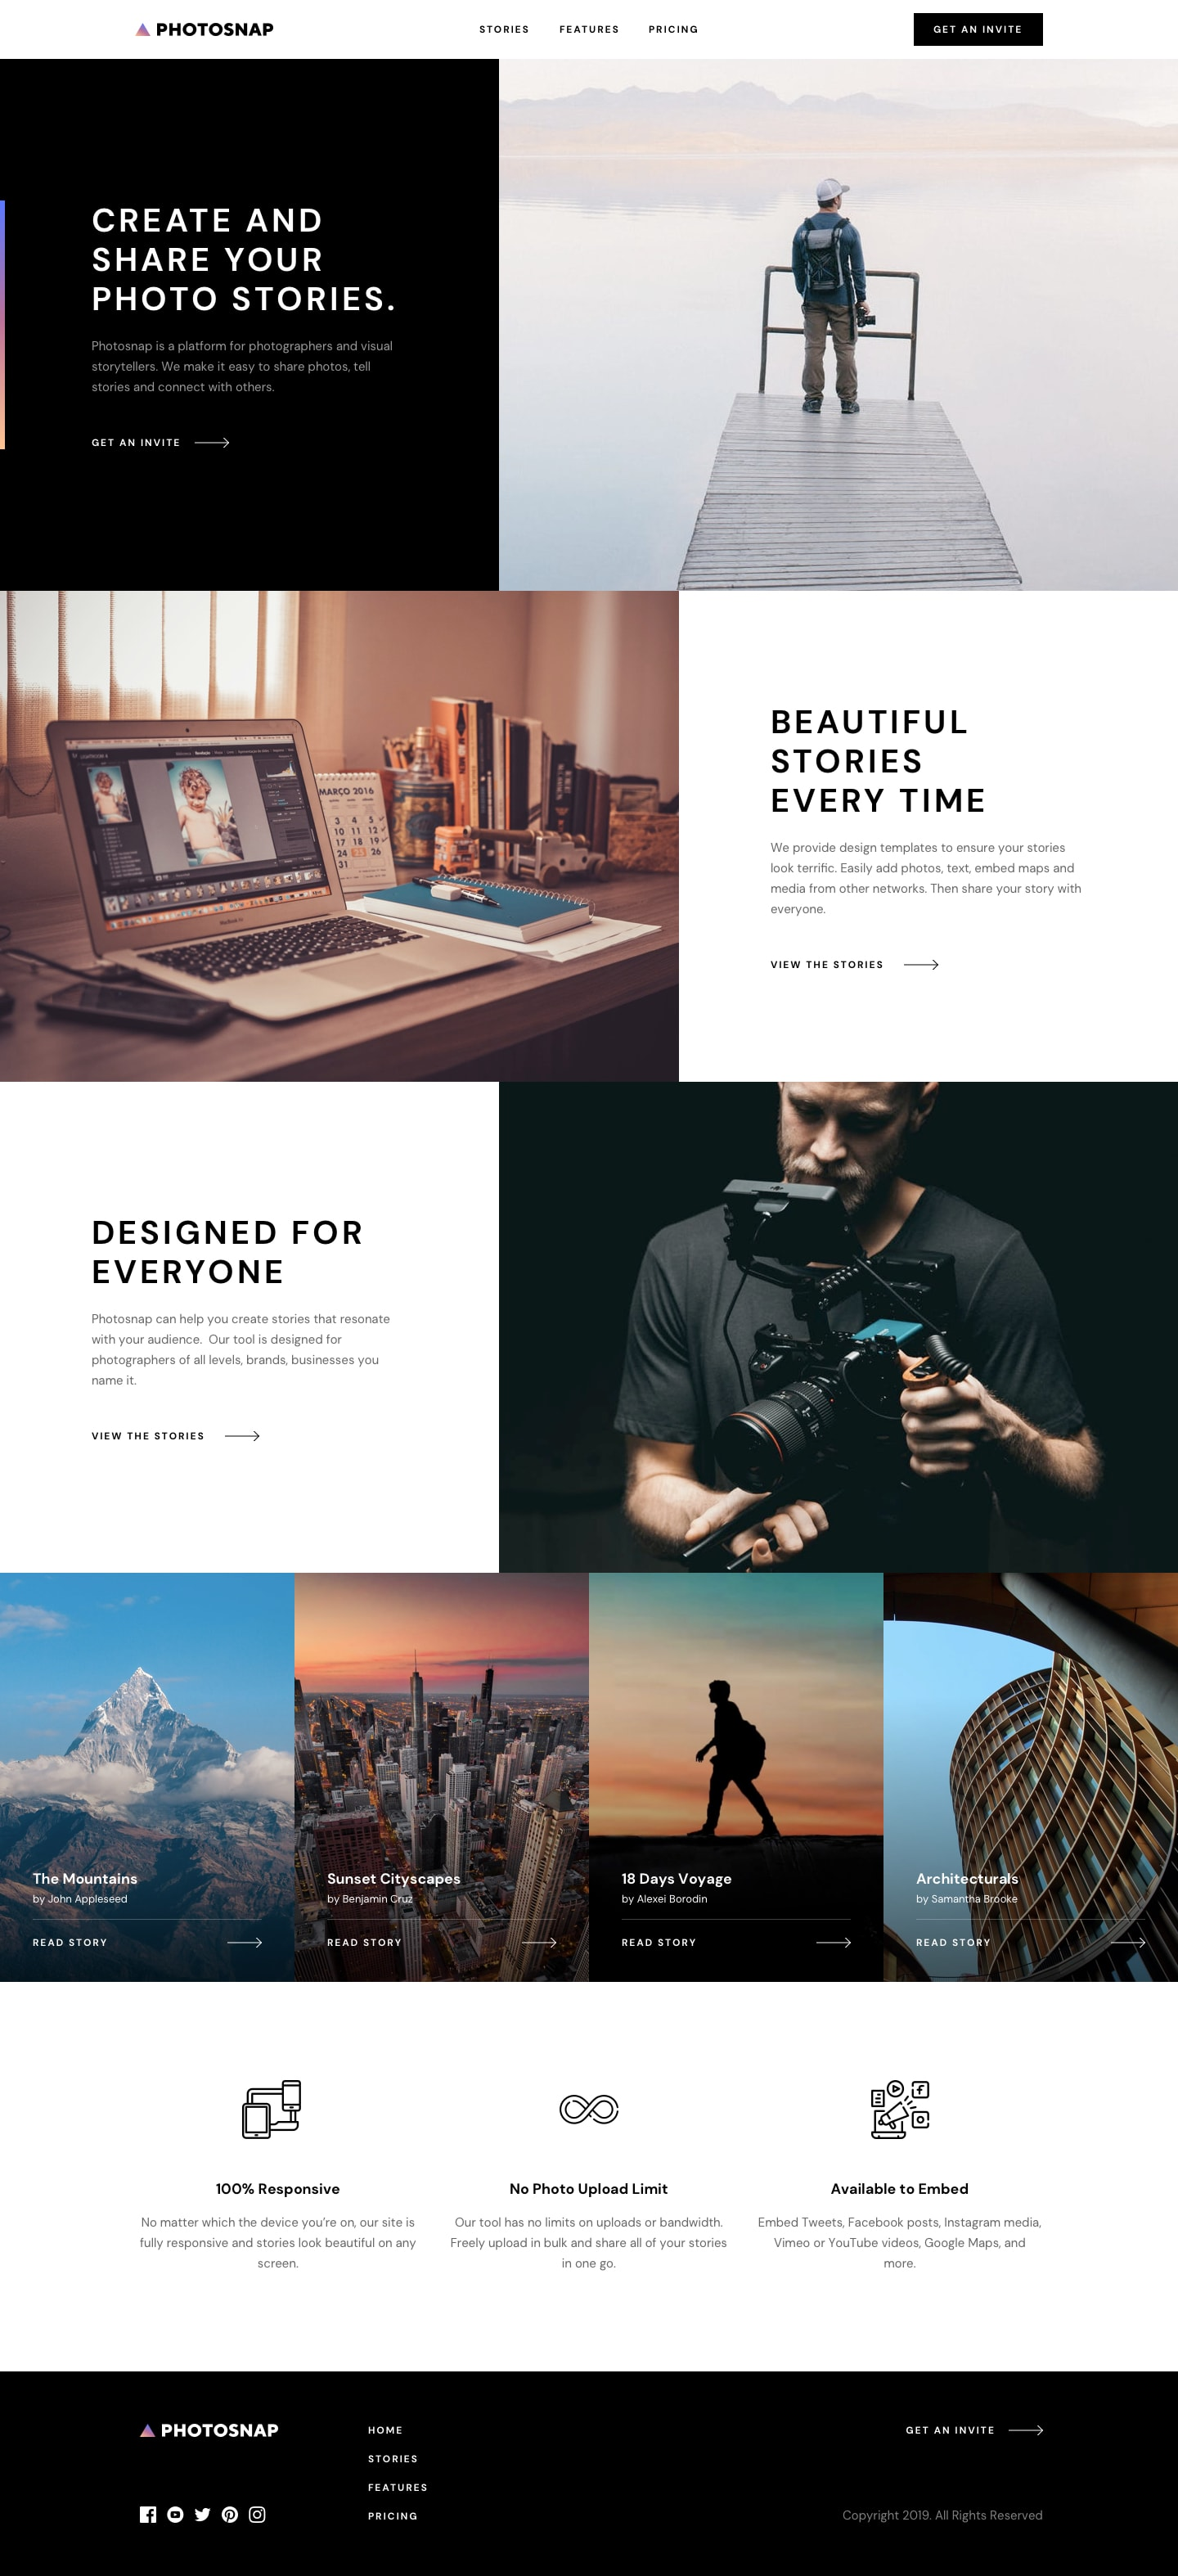 Design preview for Photosnap multi-page website coding challenge